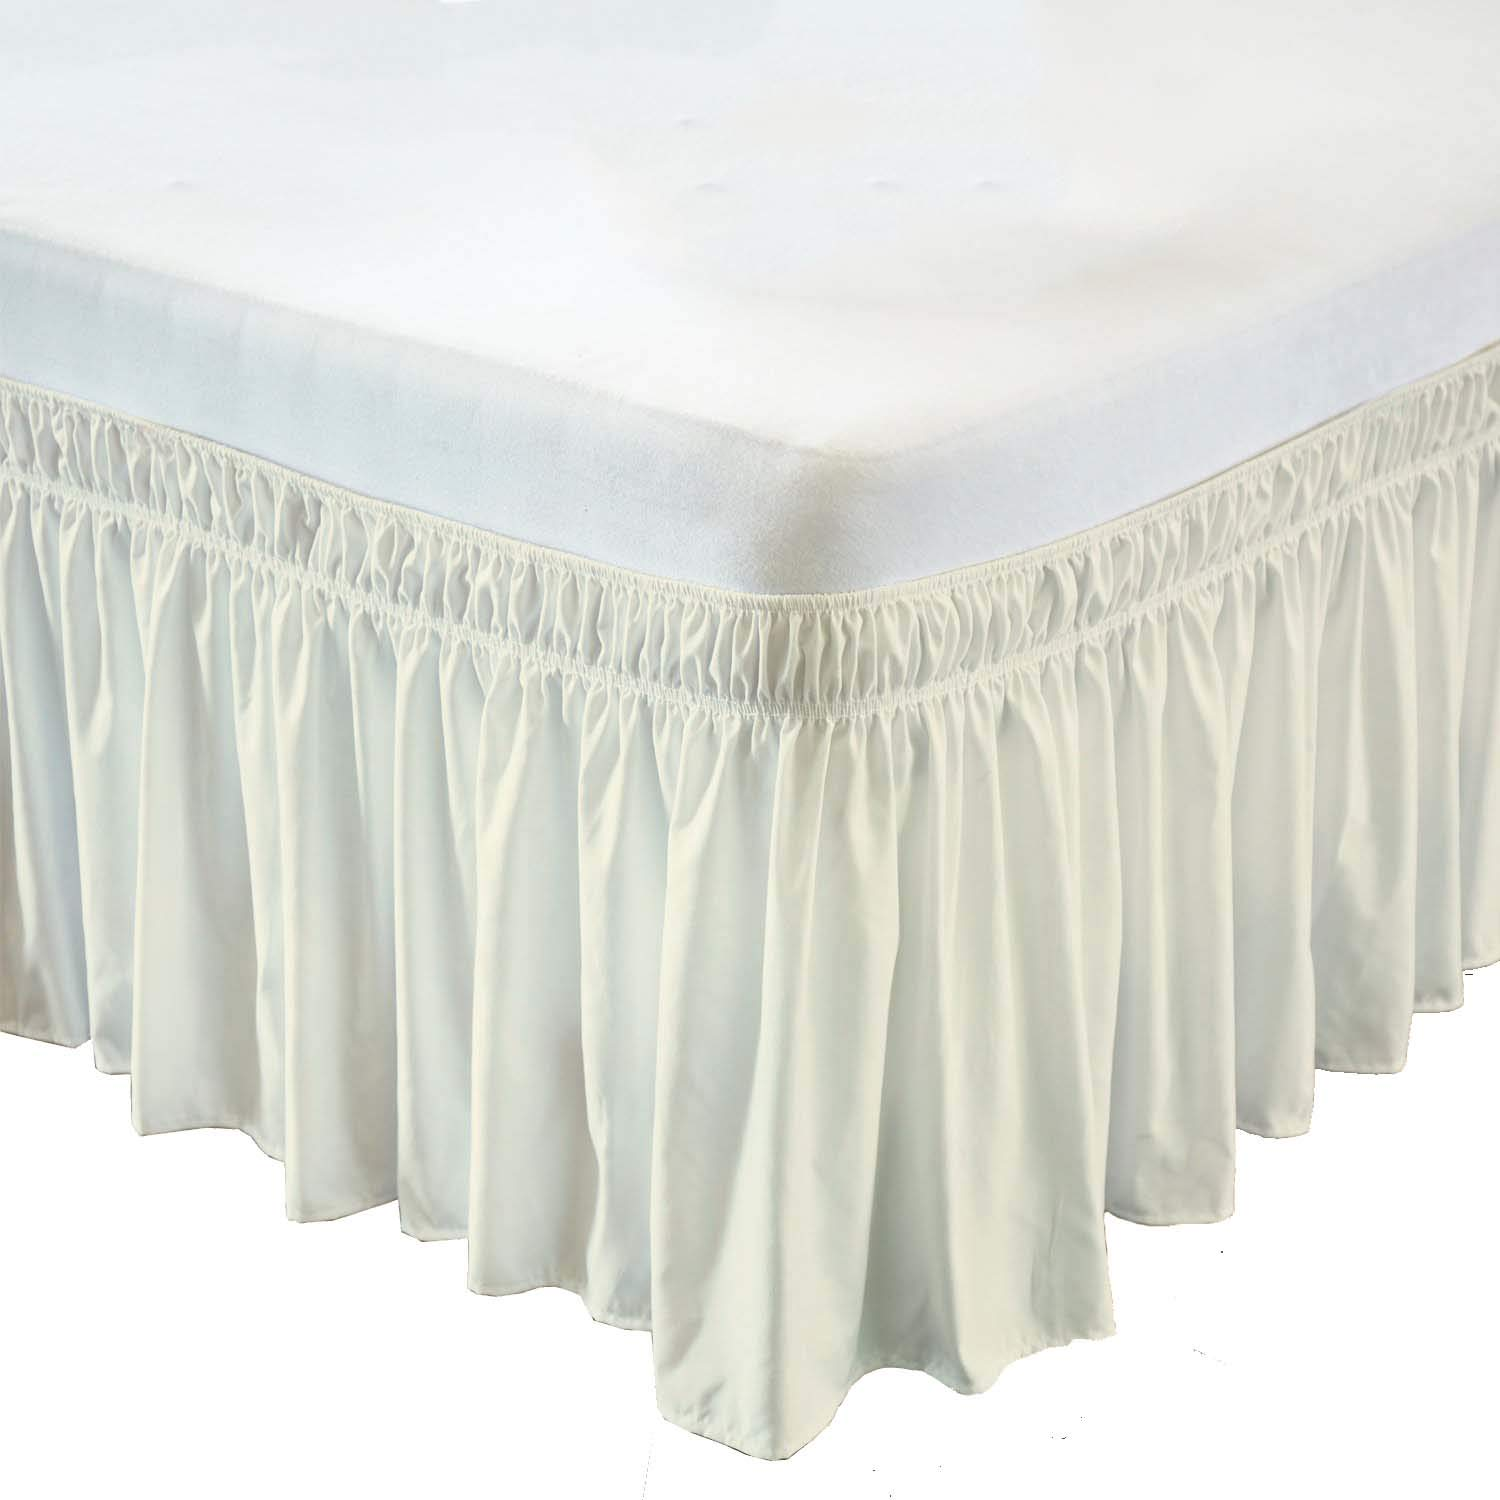 Wrap Around Bed Skirt- 12 Inch Drop Length Style Easy Fit Elastic Bed Ruffles Bed-Skirt Wrinkle Free Bed Skirt - Ivory, TwinSize (Available in All Bed Sizes and Colors)